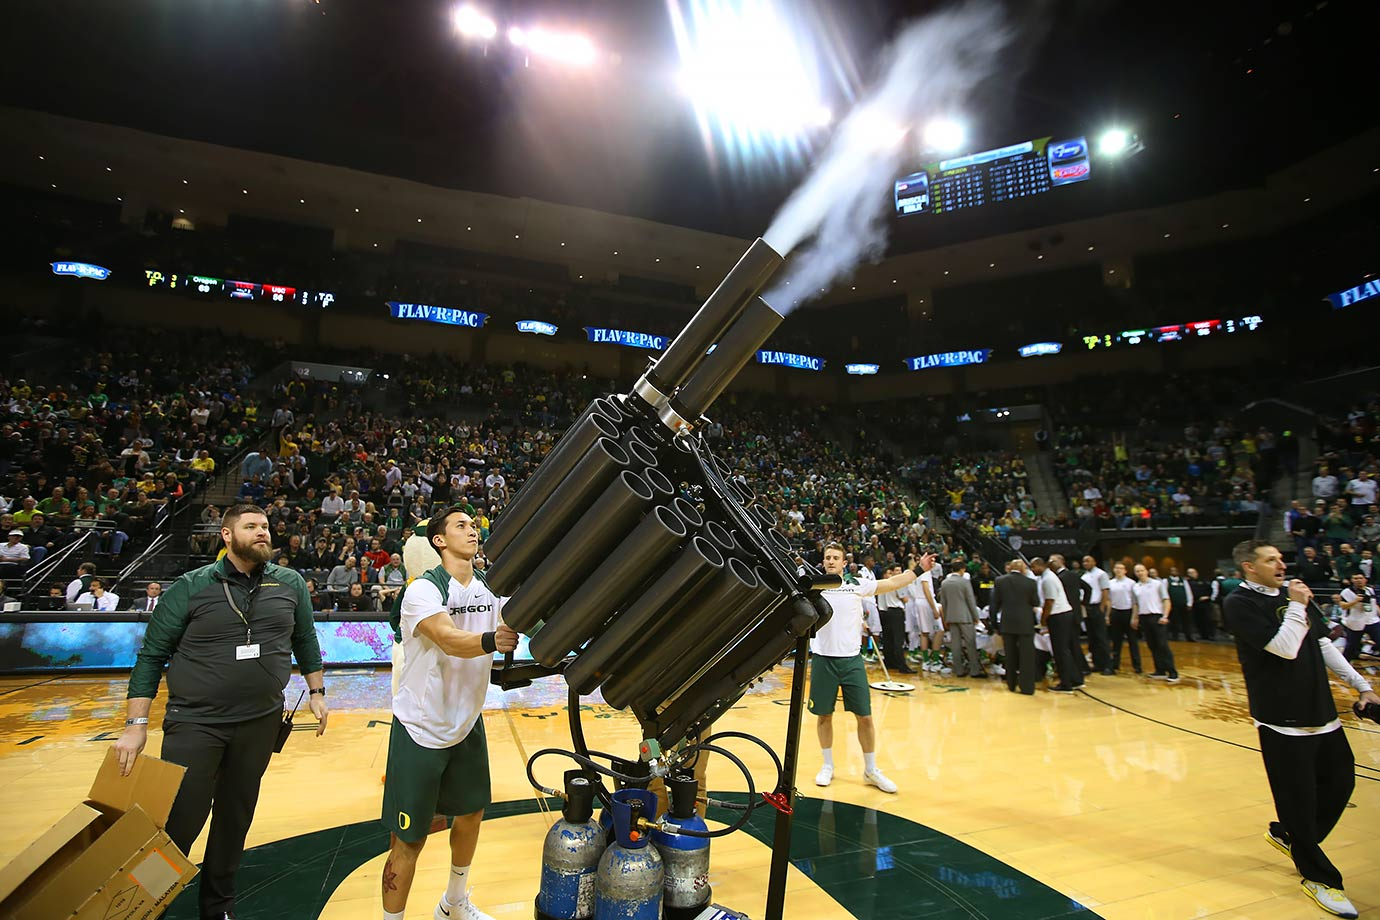 To meet the fans demand for more free T-shirts, the Oregon Ducks appear to have concocted a dual gatling T-shirt gun during a basketball game in Eugene, Ore.